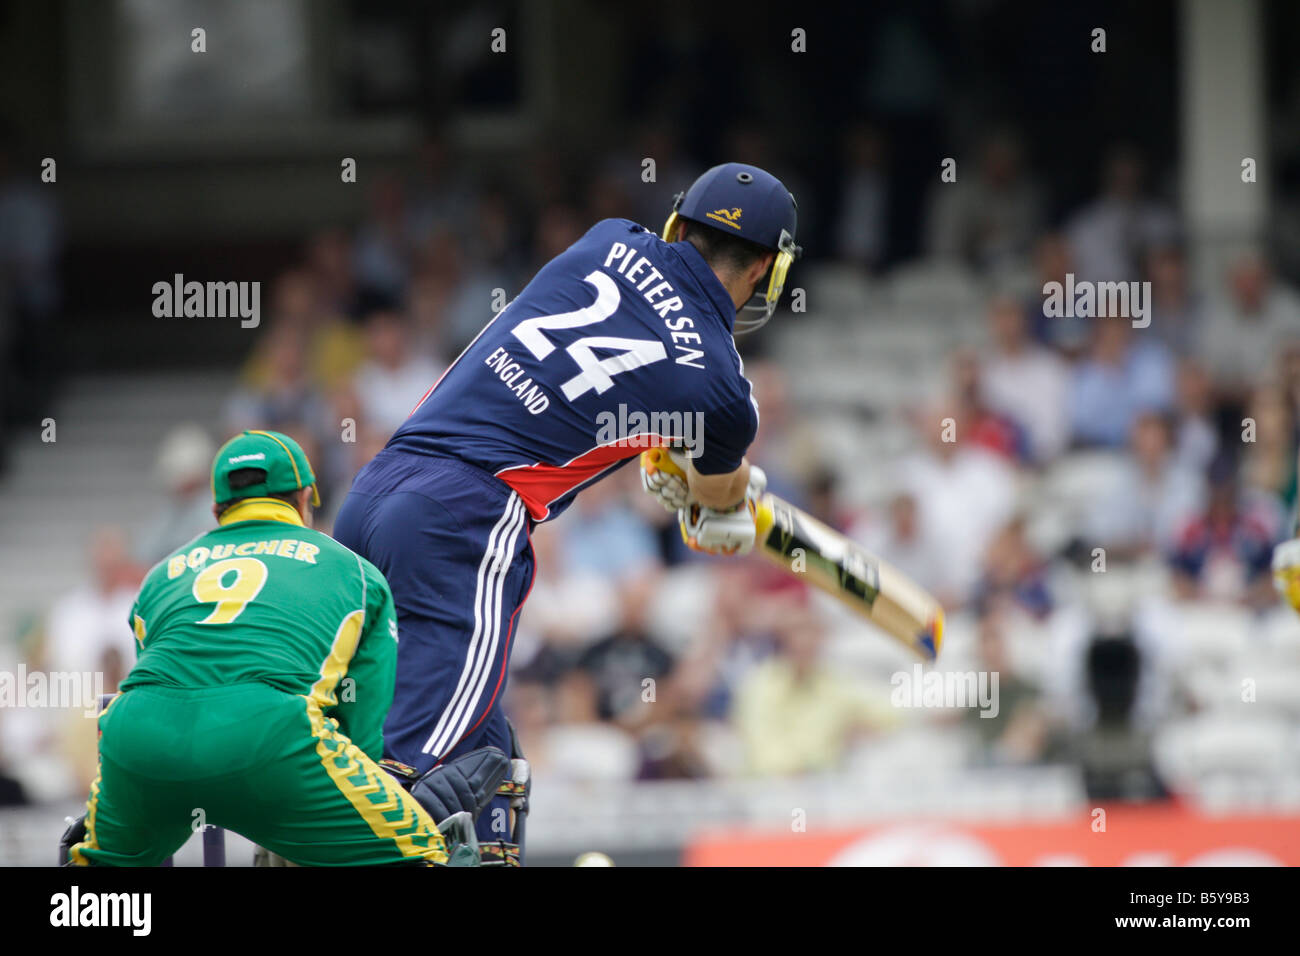 one day cricket england v australia wicket keeper bating - Stock Image